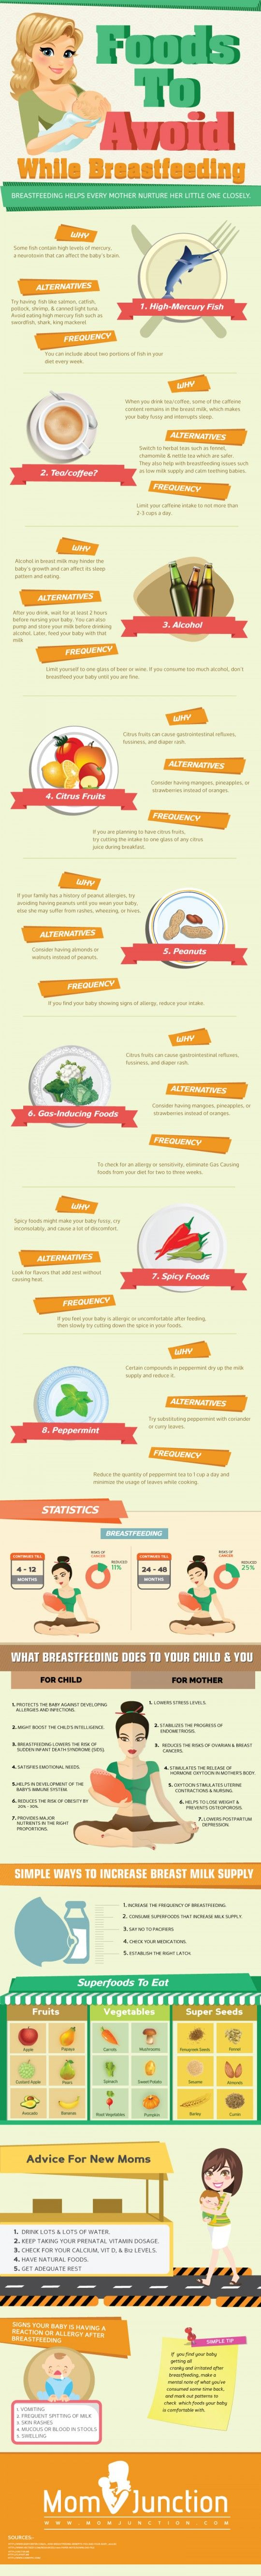 Are There Any Foods To Avoid While Breastfeeding